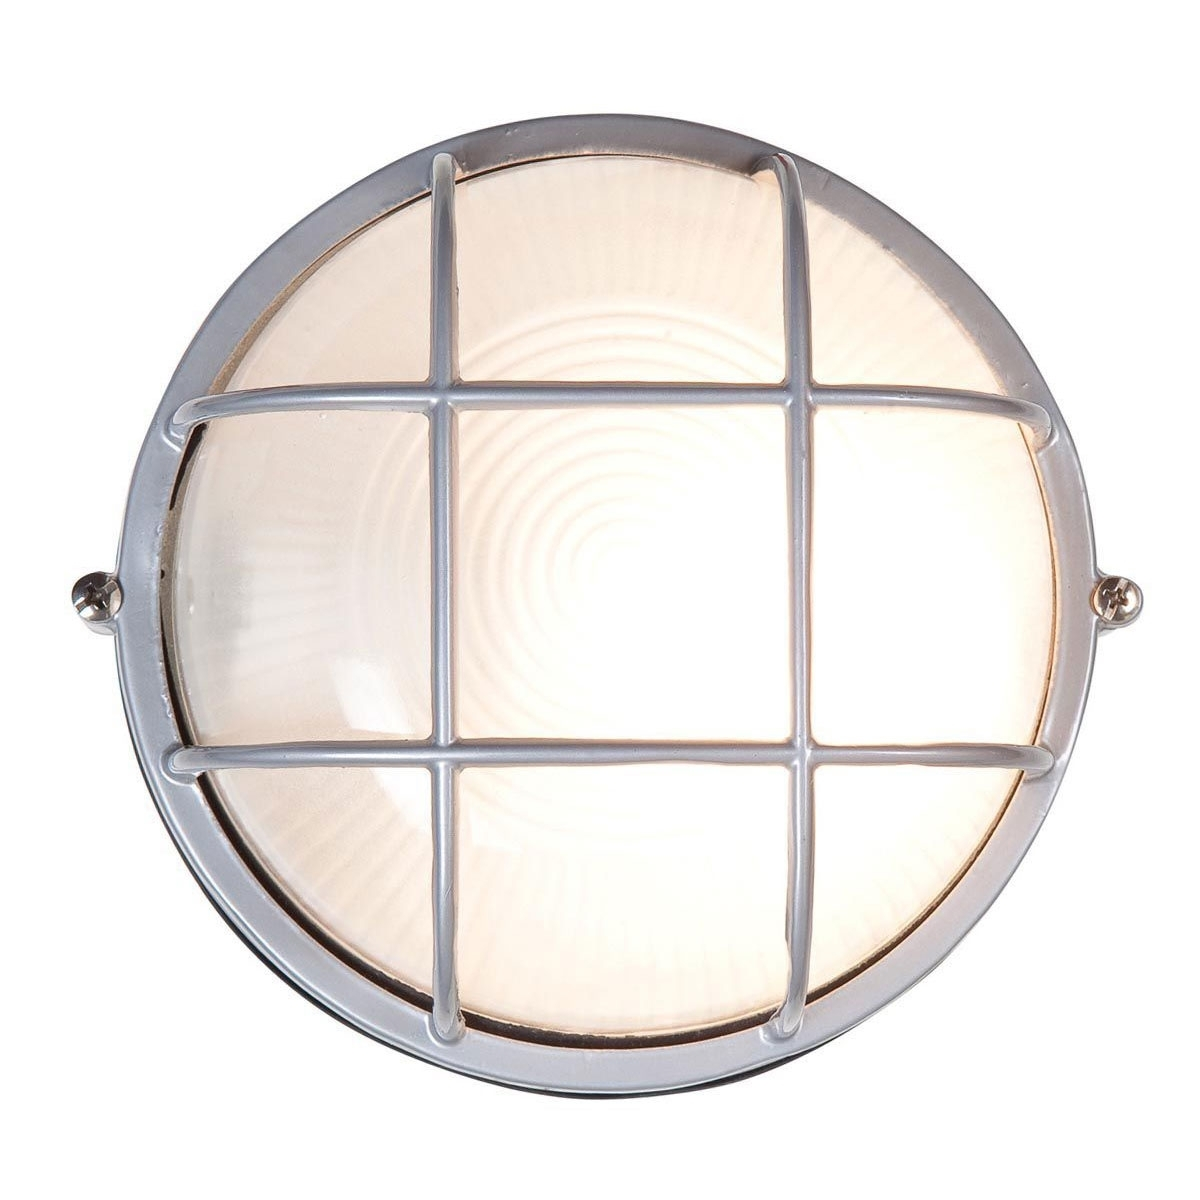 Inspiration about Round Outdoor Bulkhead Wall / Ceiling Lightaccess | 20296 Sat/fst Intended For Outdoor Wall Ceiling Lighting (#13 of 15)